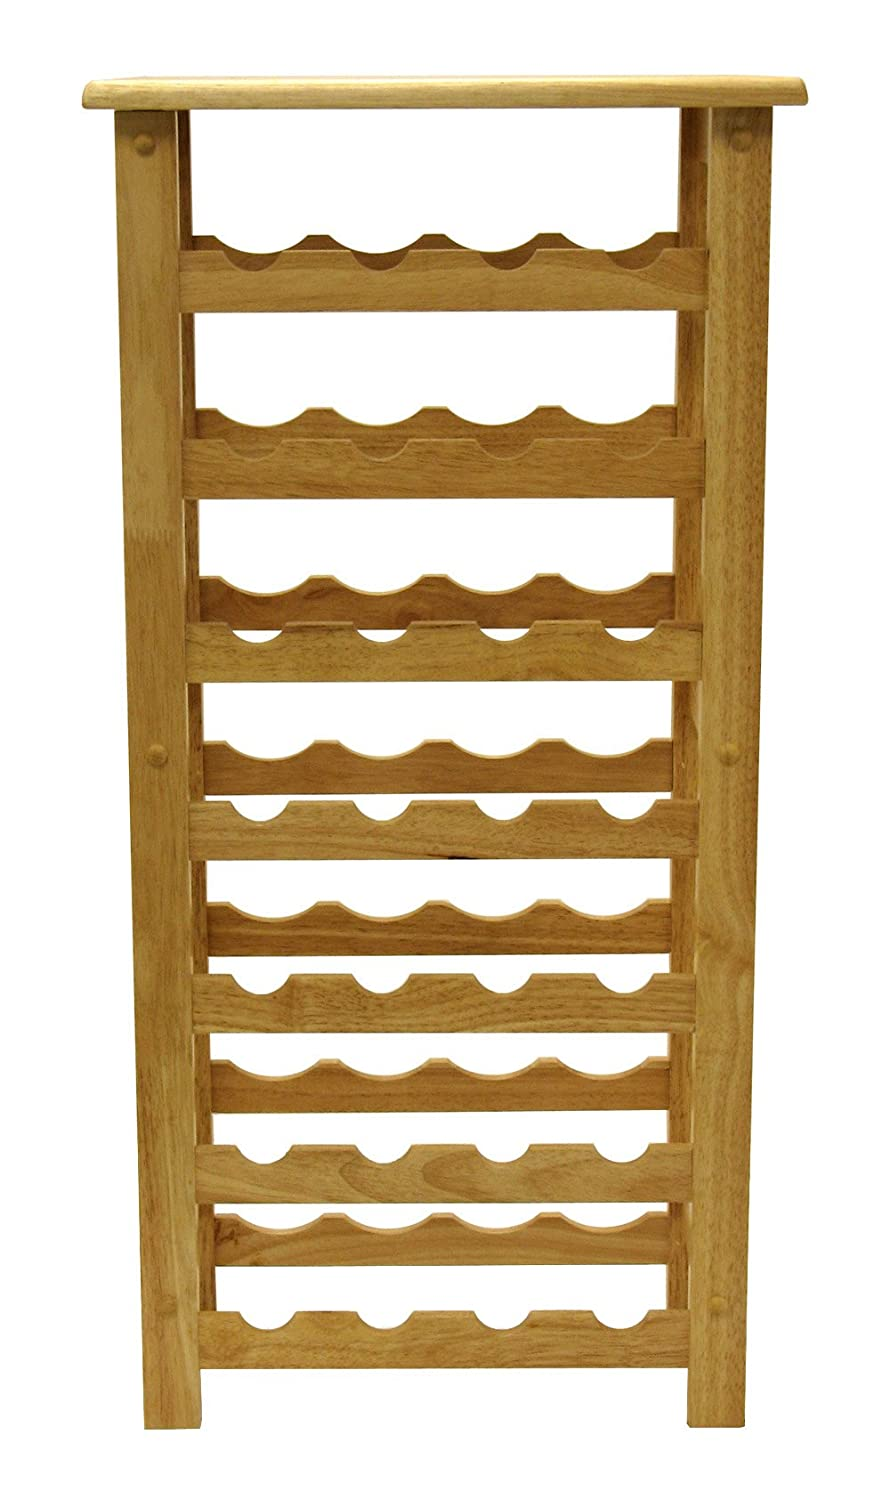 Pdf Diy Wine Bottle Storage Rack Plans Download Vintage